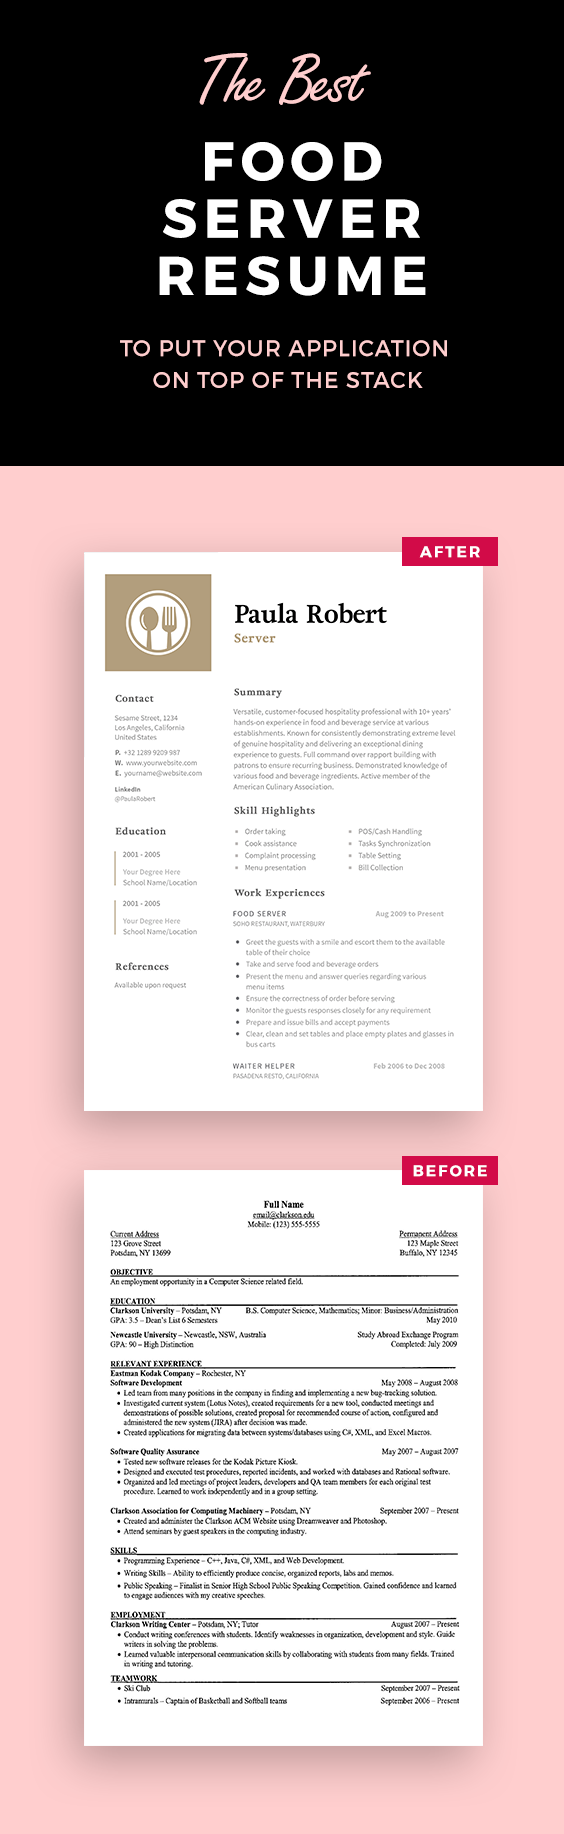 Resume For Server Server Resume Template  Resume Templates  Pinterest  Template And .